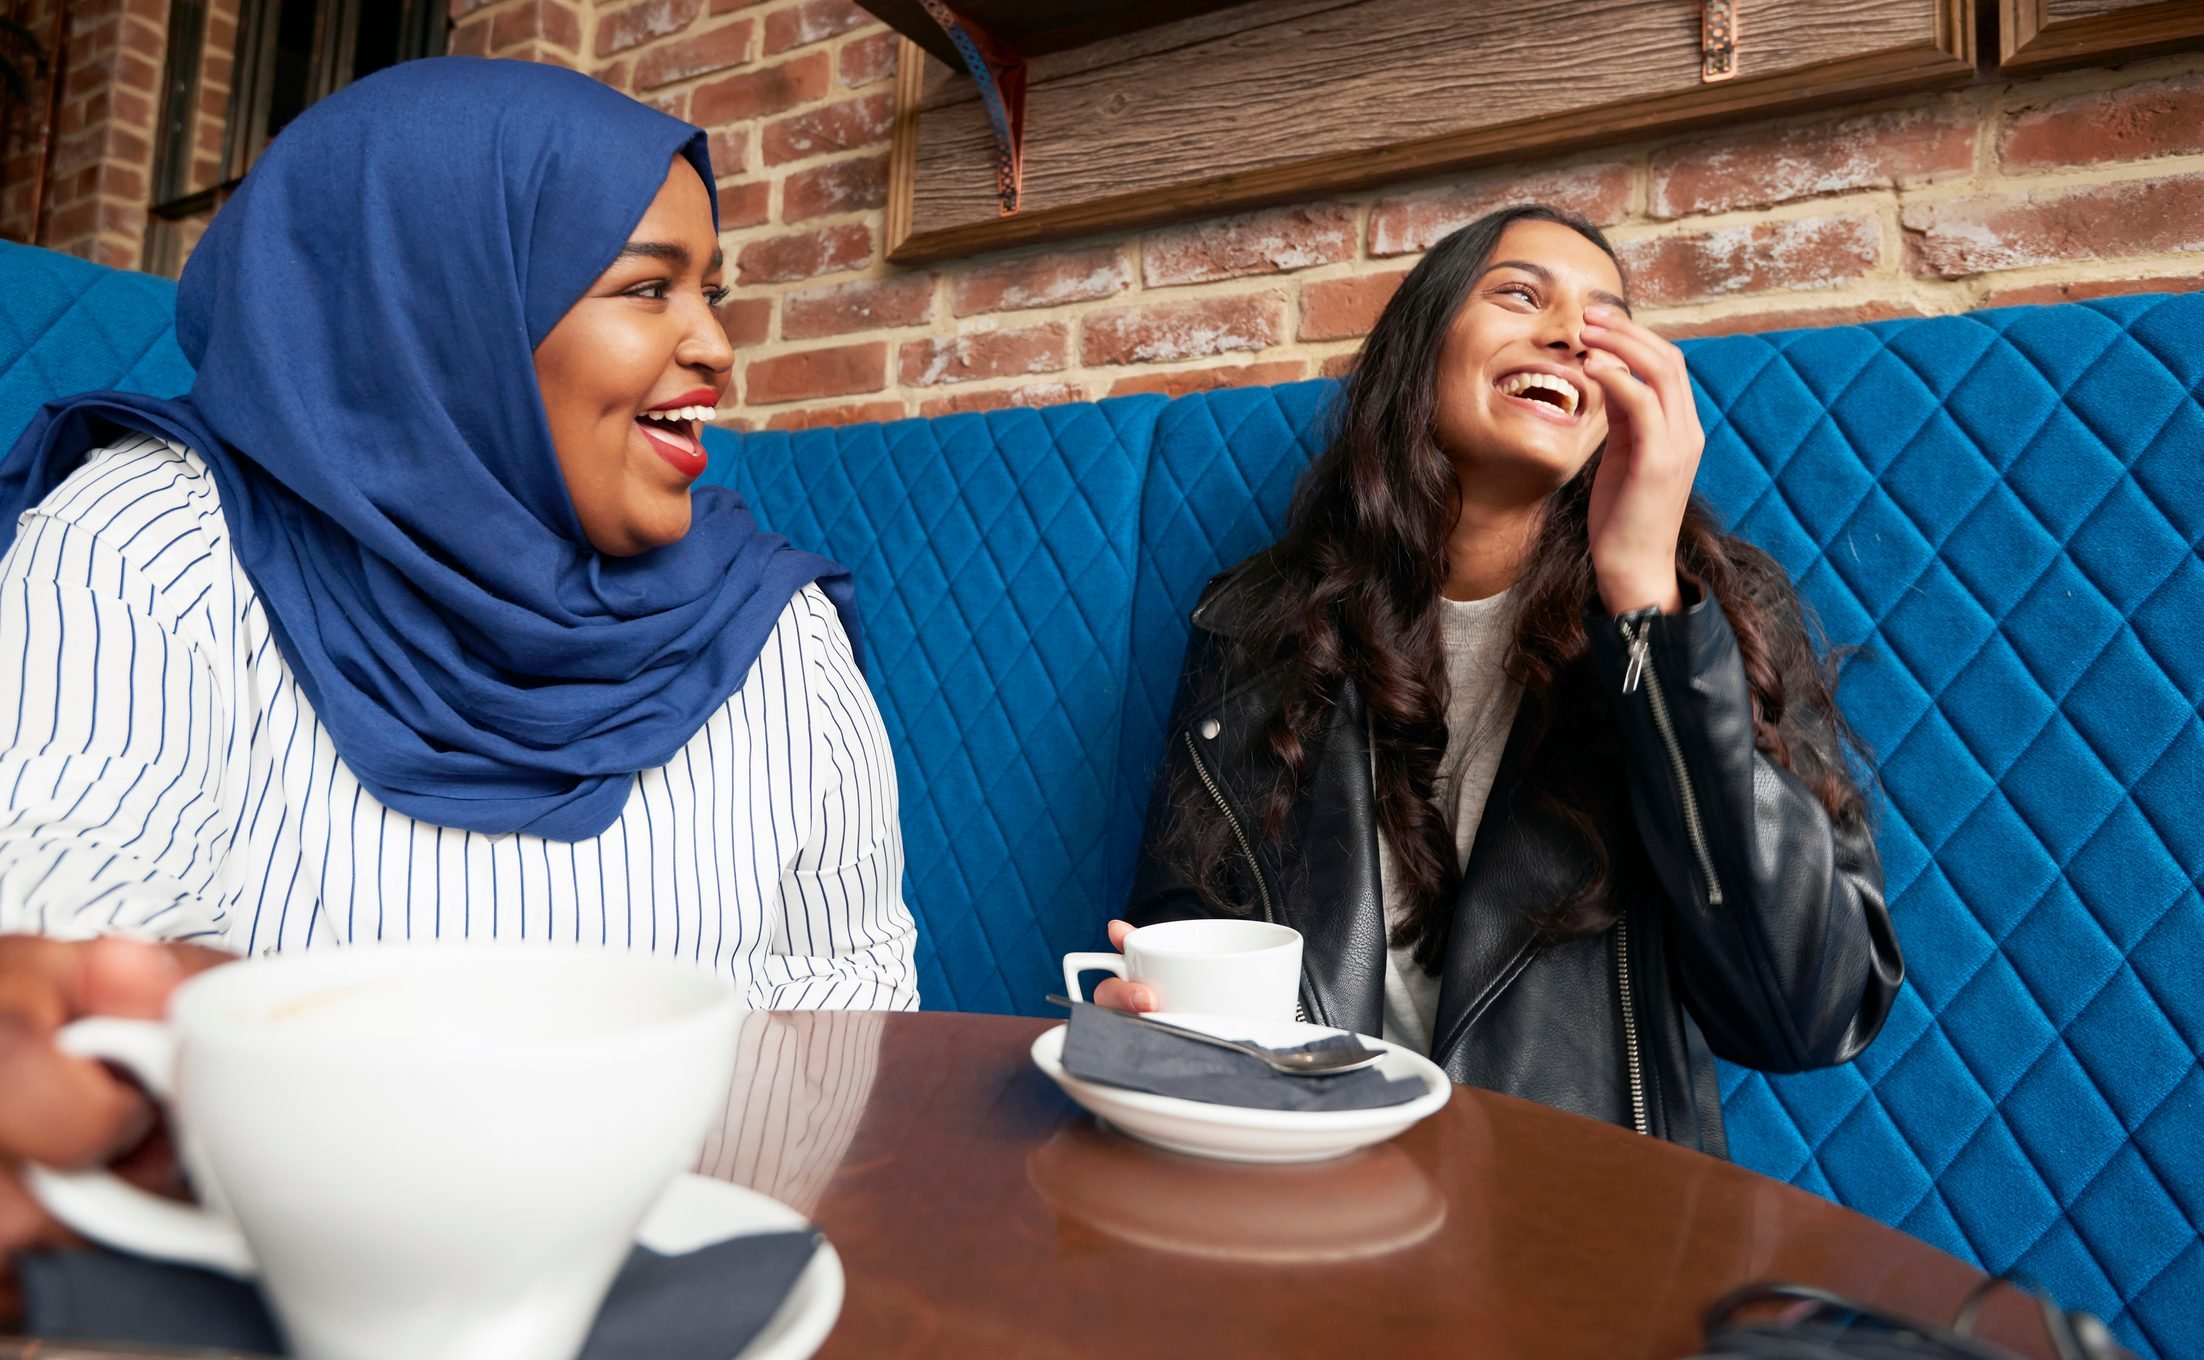 Friends laughing and drinking coffee in a cafe